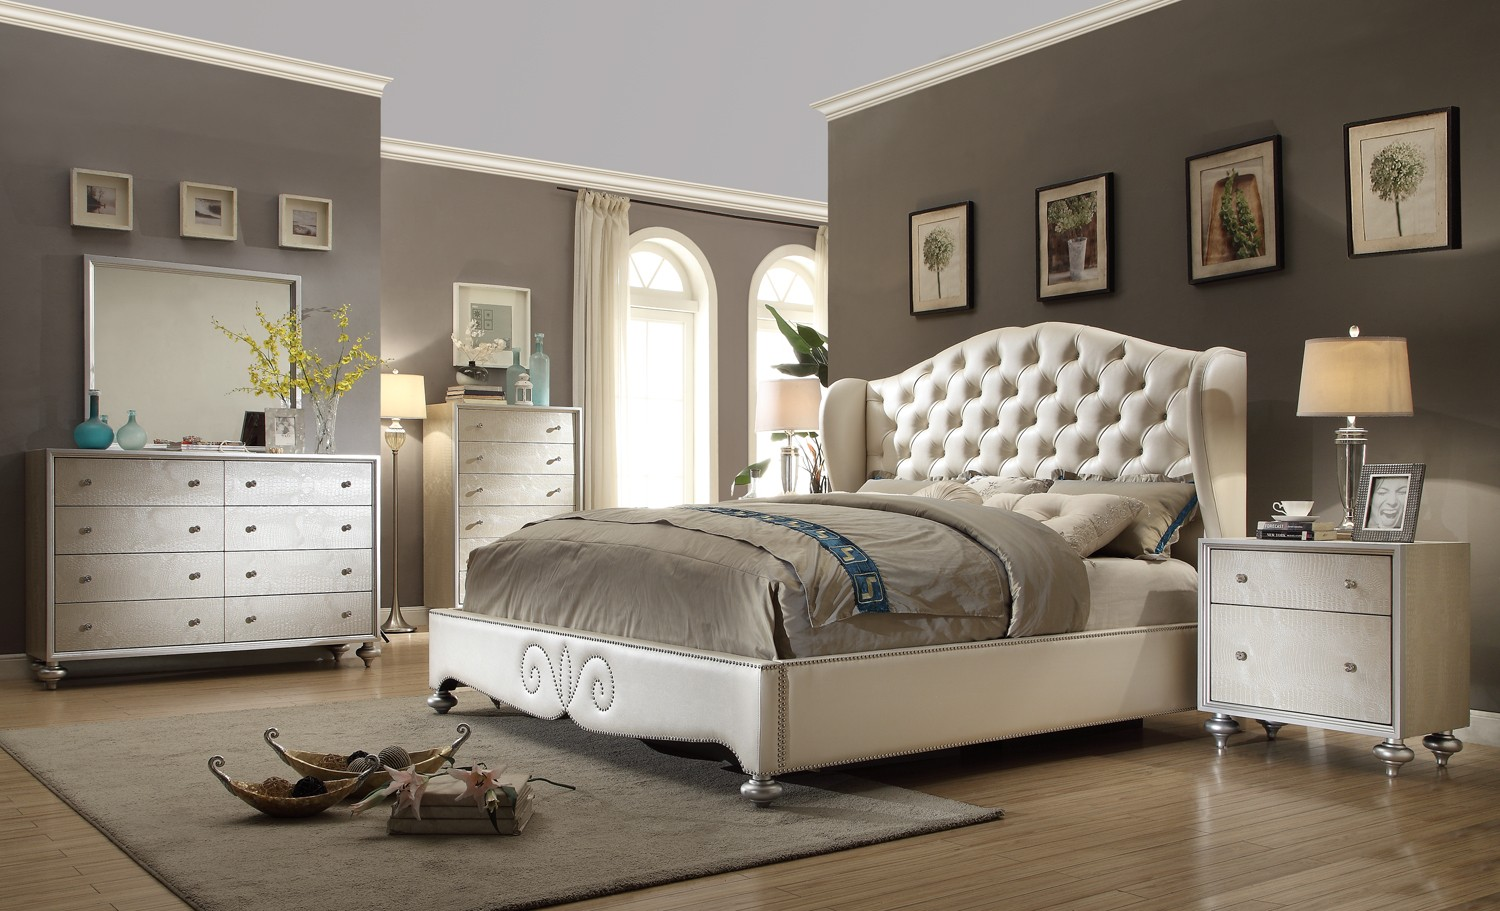 Tufted wingback bed button tufted upholstered bed for White dresser set bedroom furniture